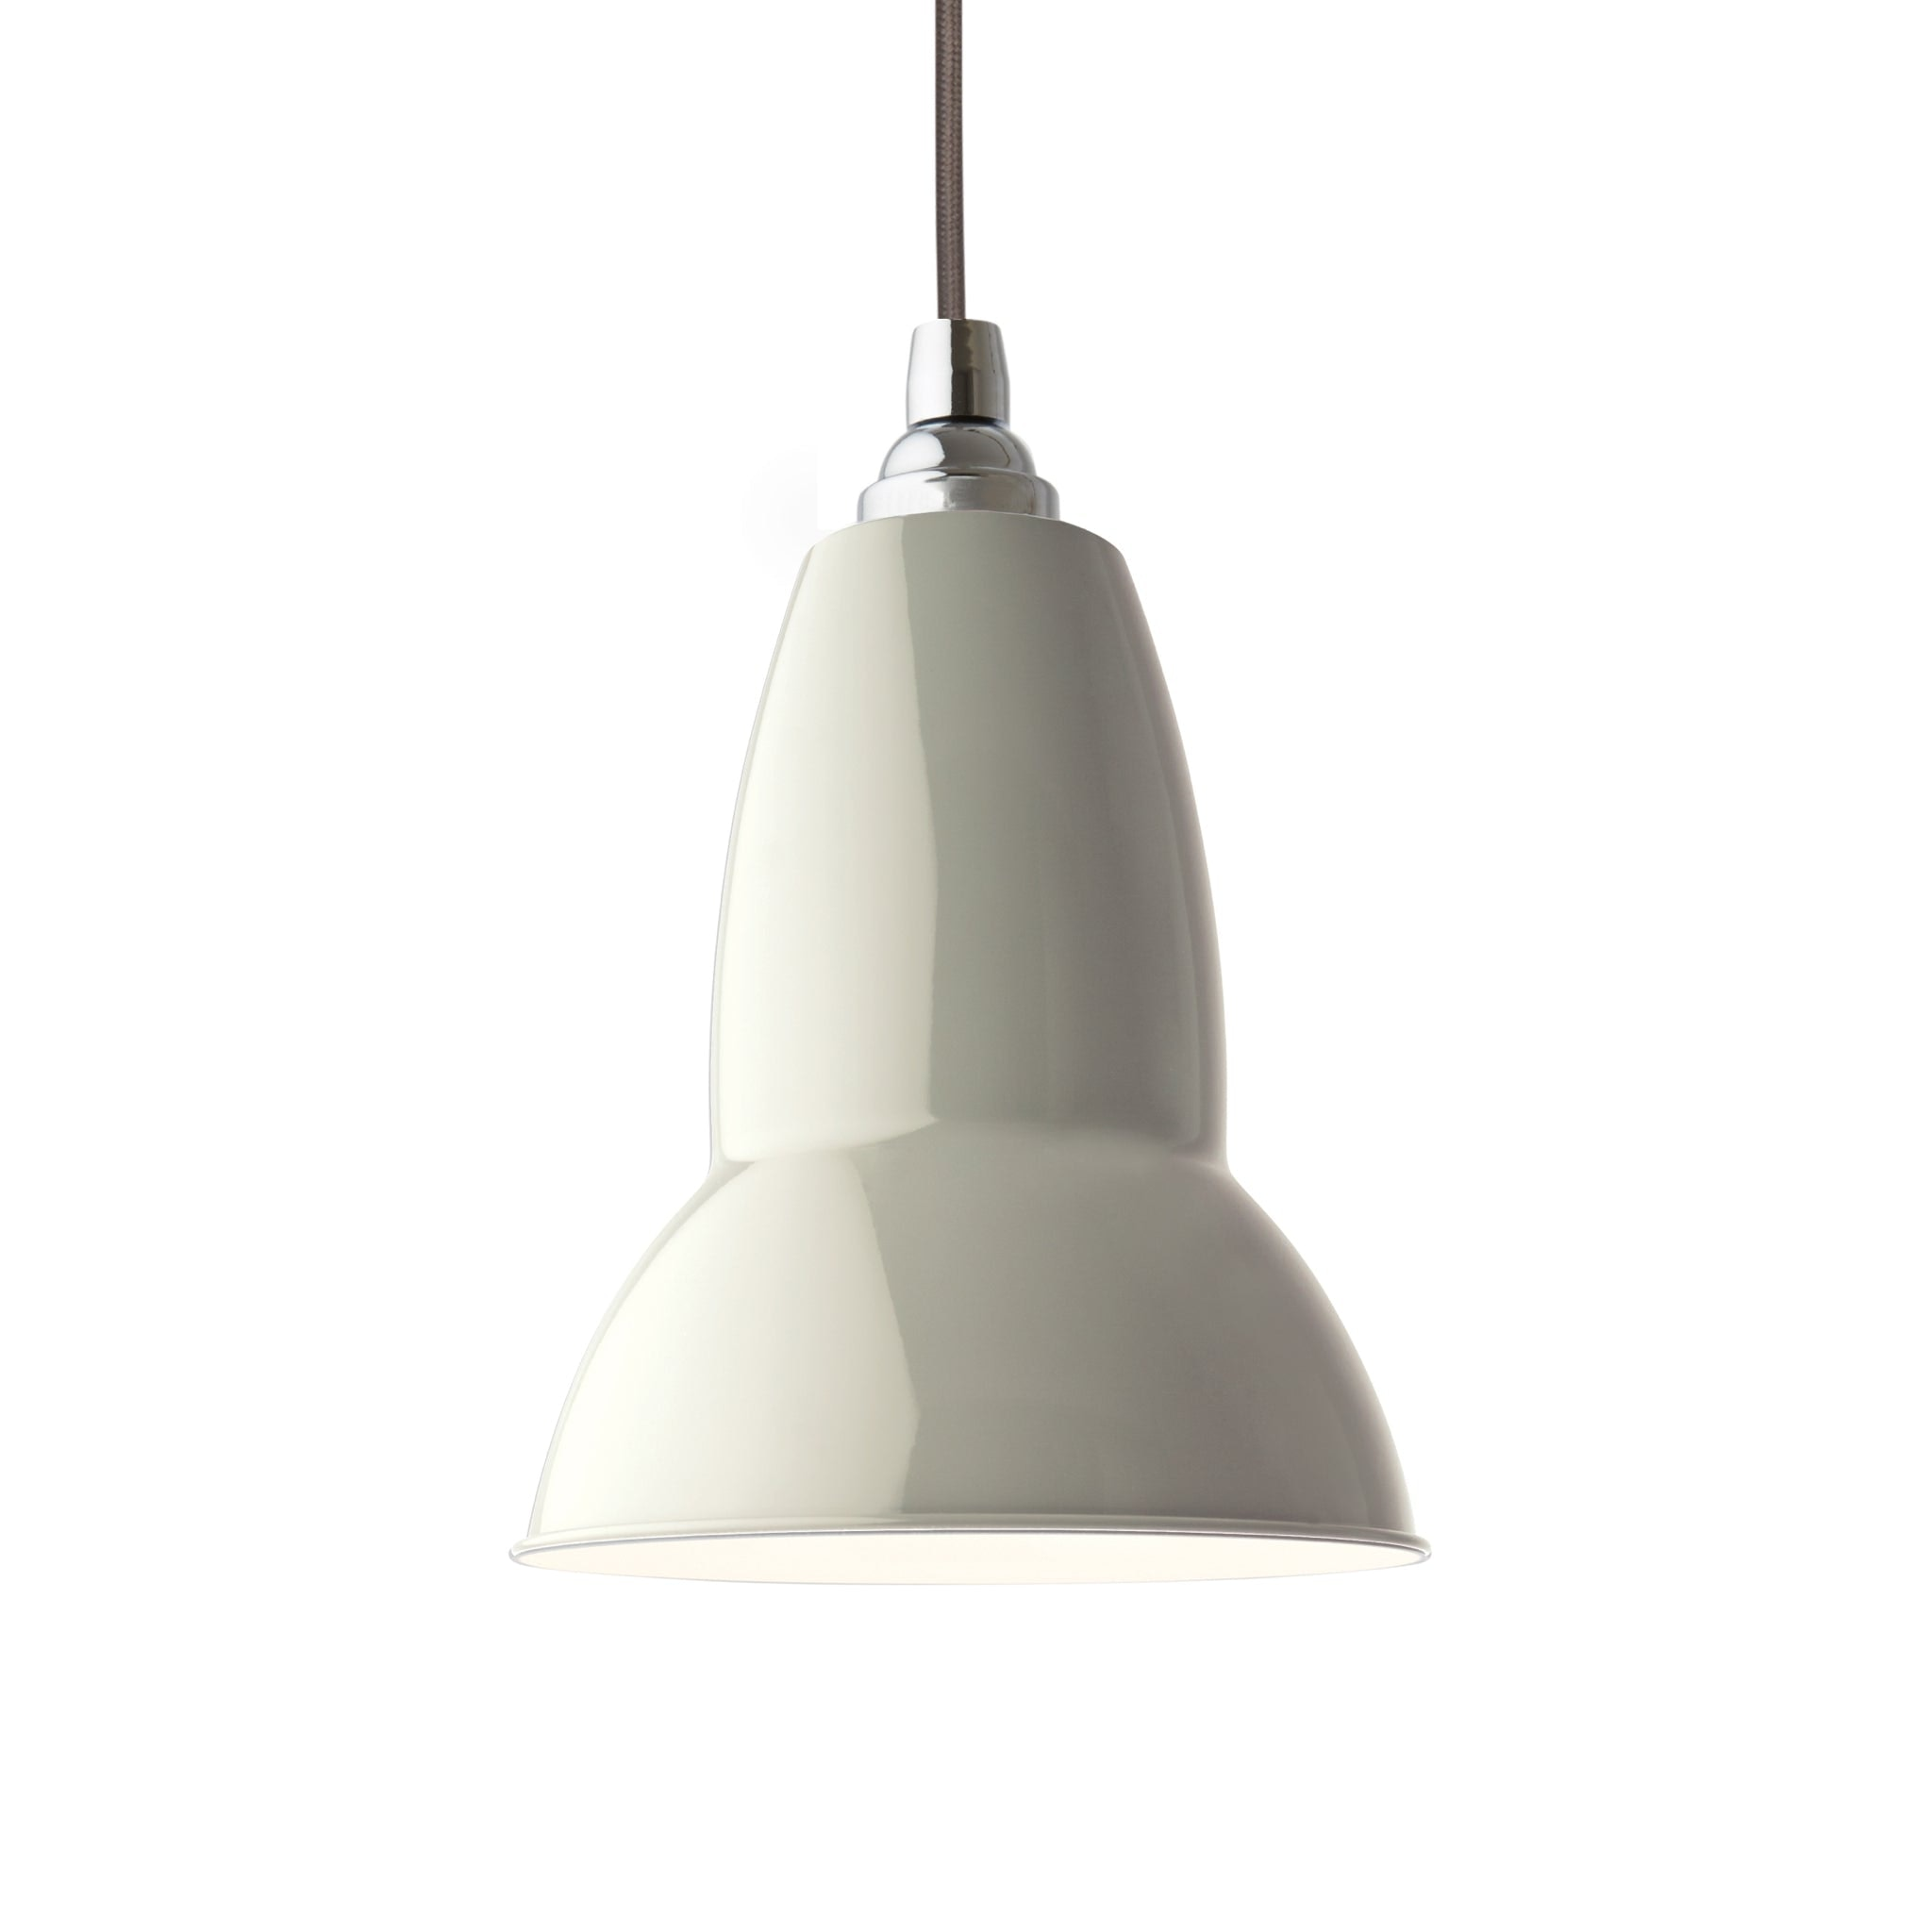 Original 1227 Pendant by Anglepoise